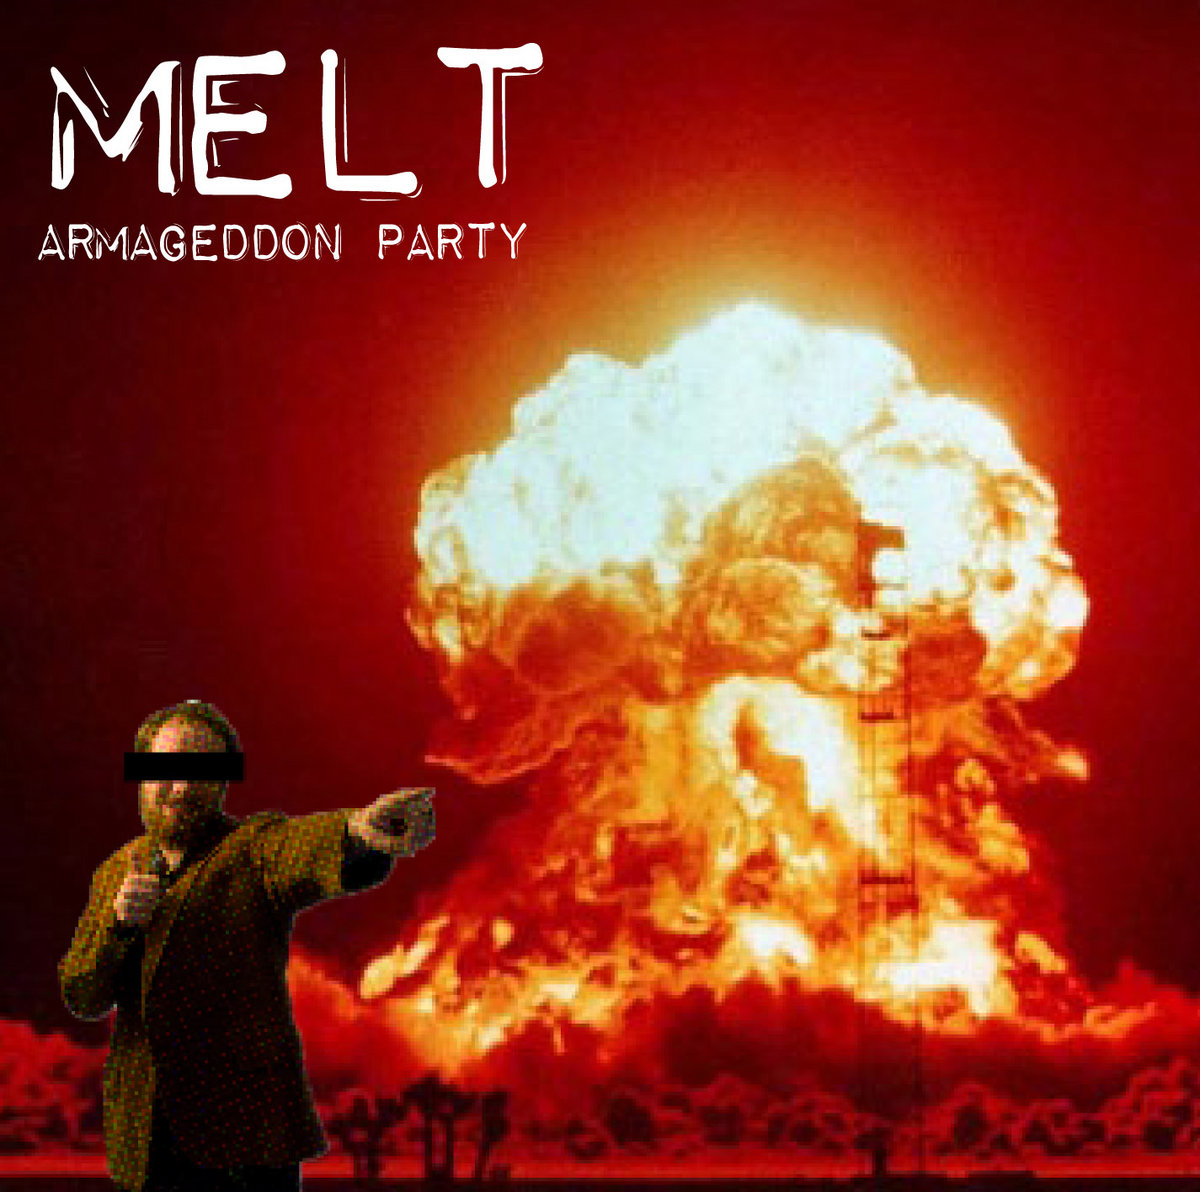 Armageddon Party by Melt